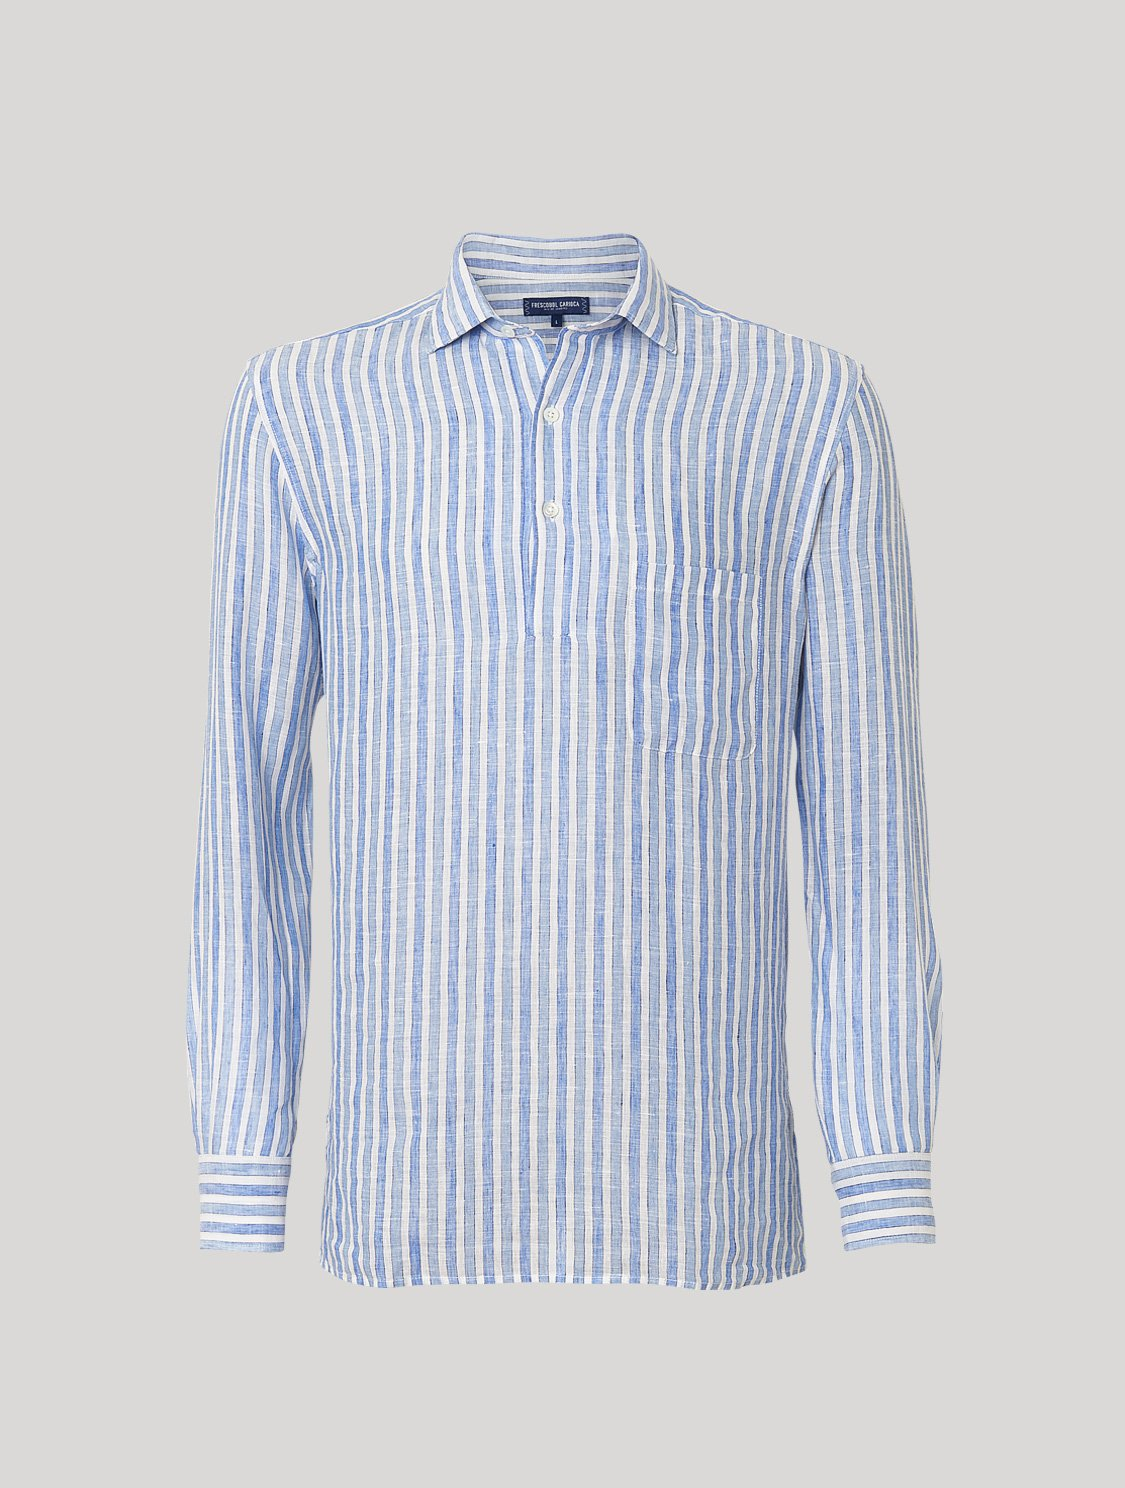 CAETANO SHIRT DASHED STRIPE PRINT